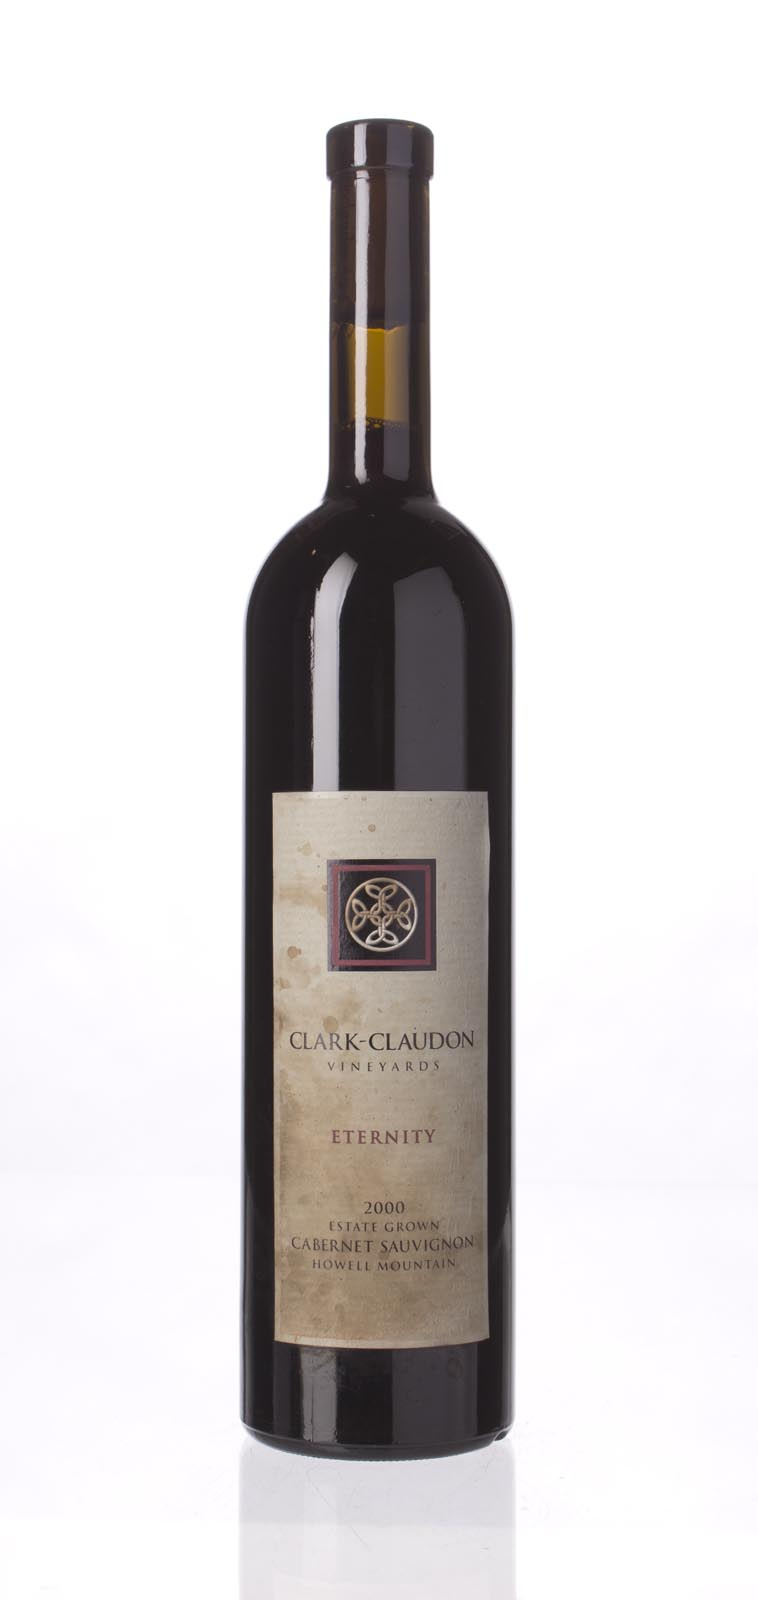 Clark Claudon Cabernet Sauvignon Eternity 2000, 750mL () from The BPW - Merchants of rare and fine wines.